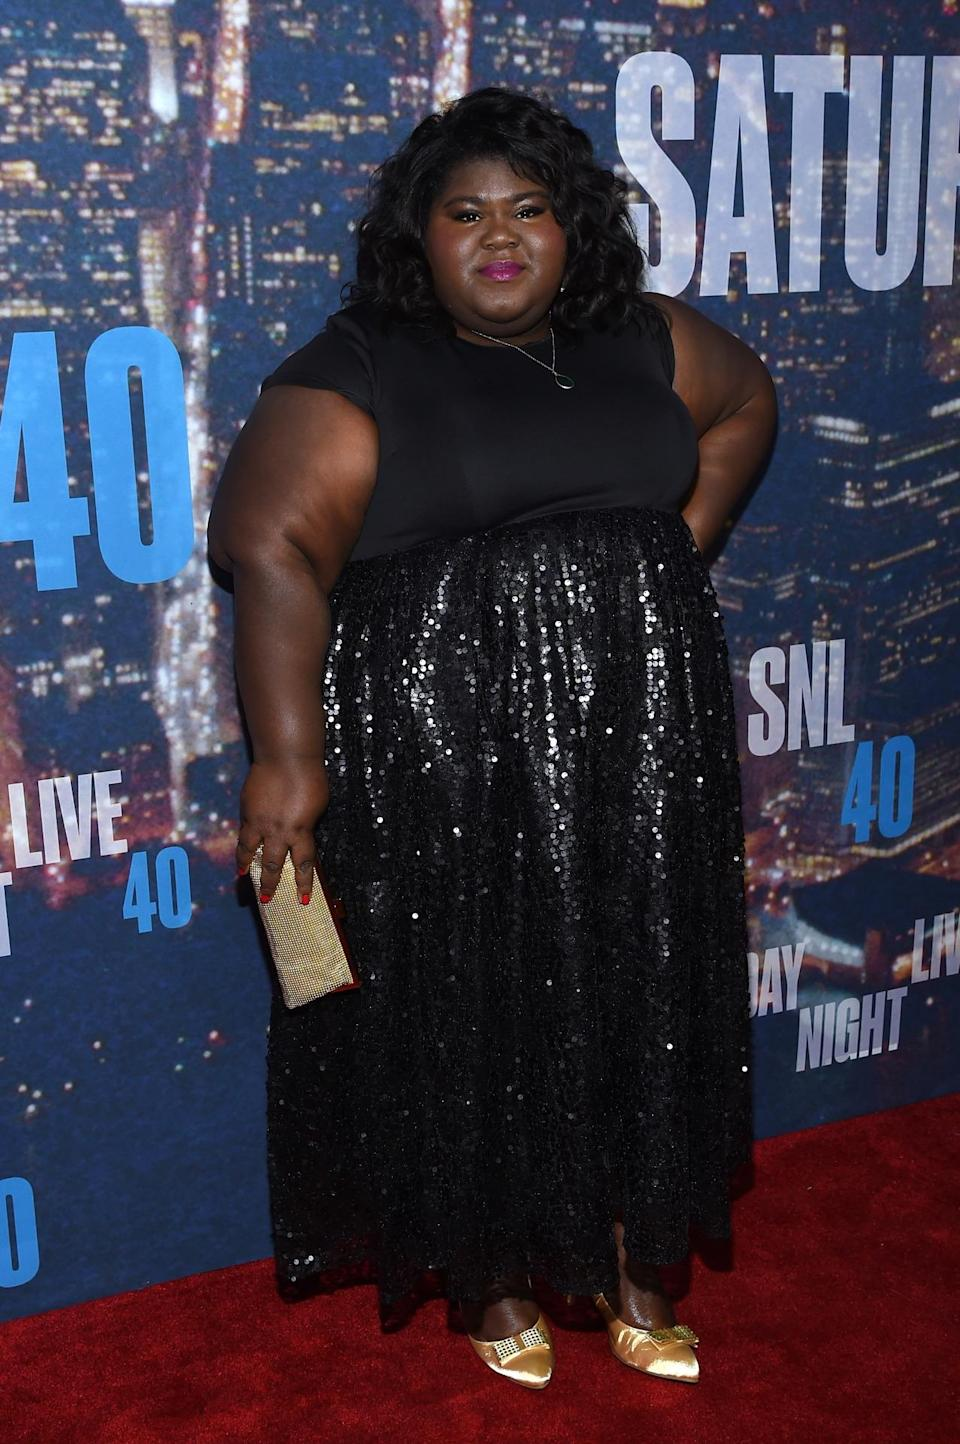 Sequins always make a party more fun and Gabourey Sidibe has them in spades.